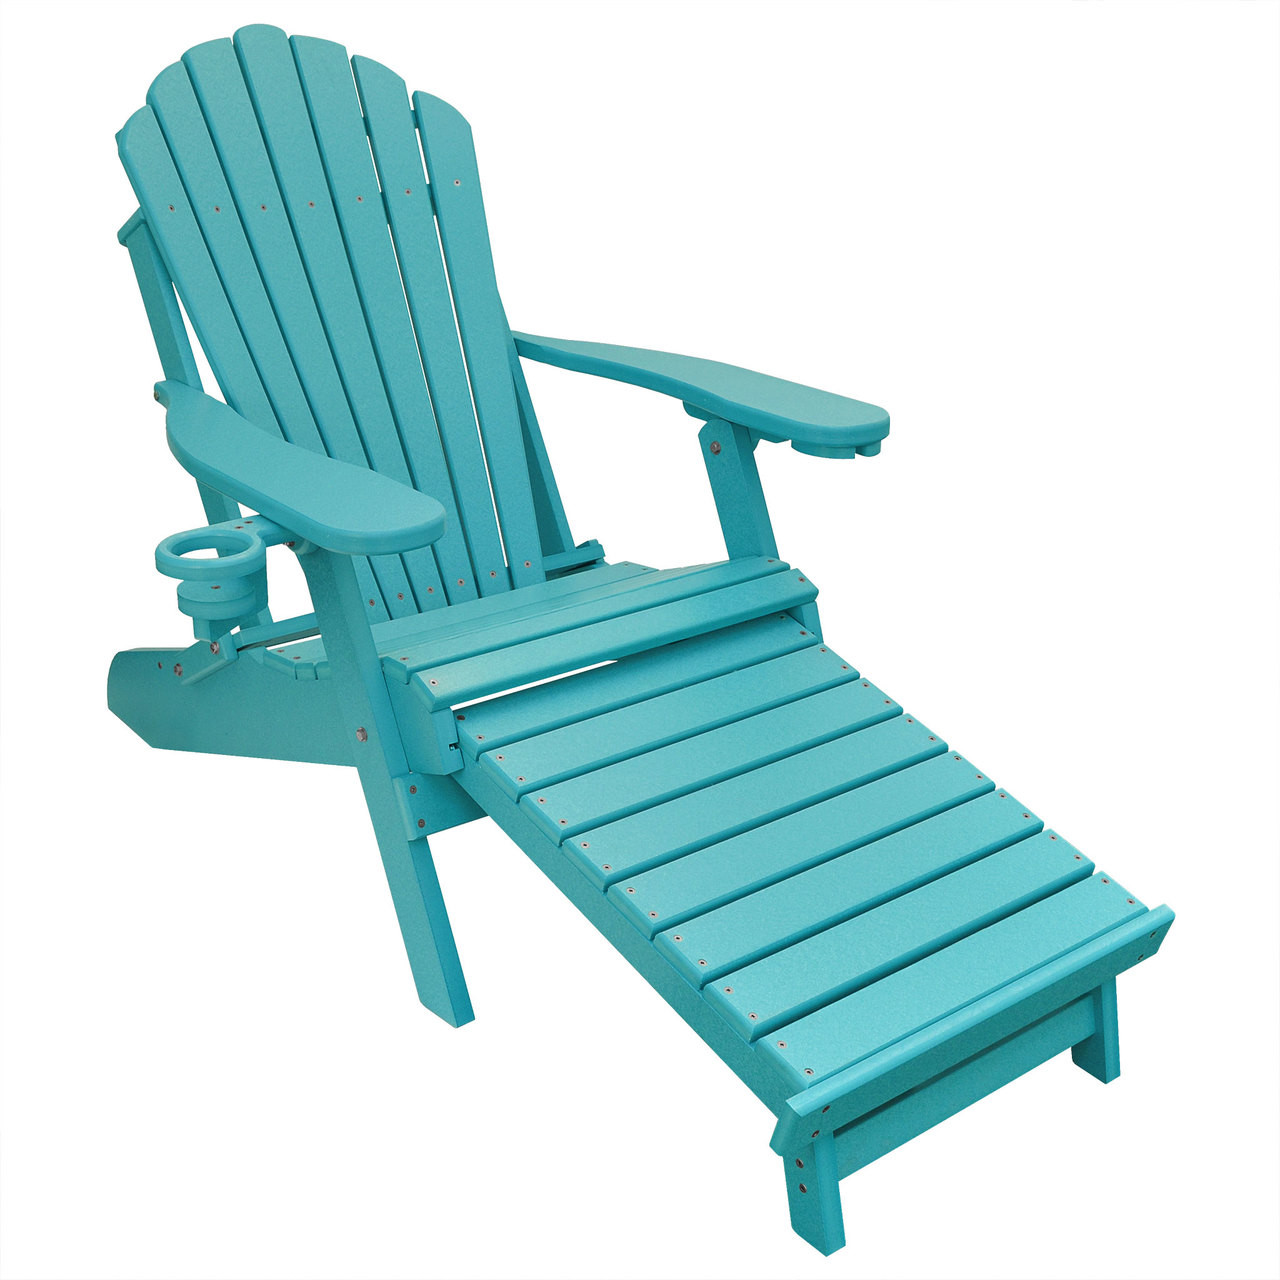 Incroyable Outer Banks Poly Lumber Folding Adirondack Chair With Integrated Footrest    Aruba Blue